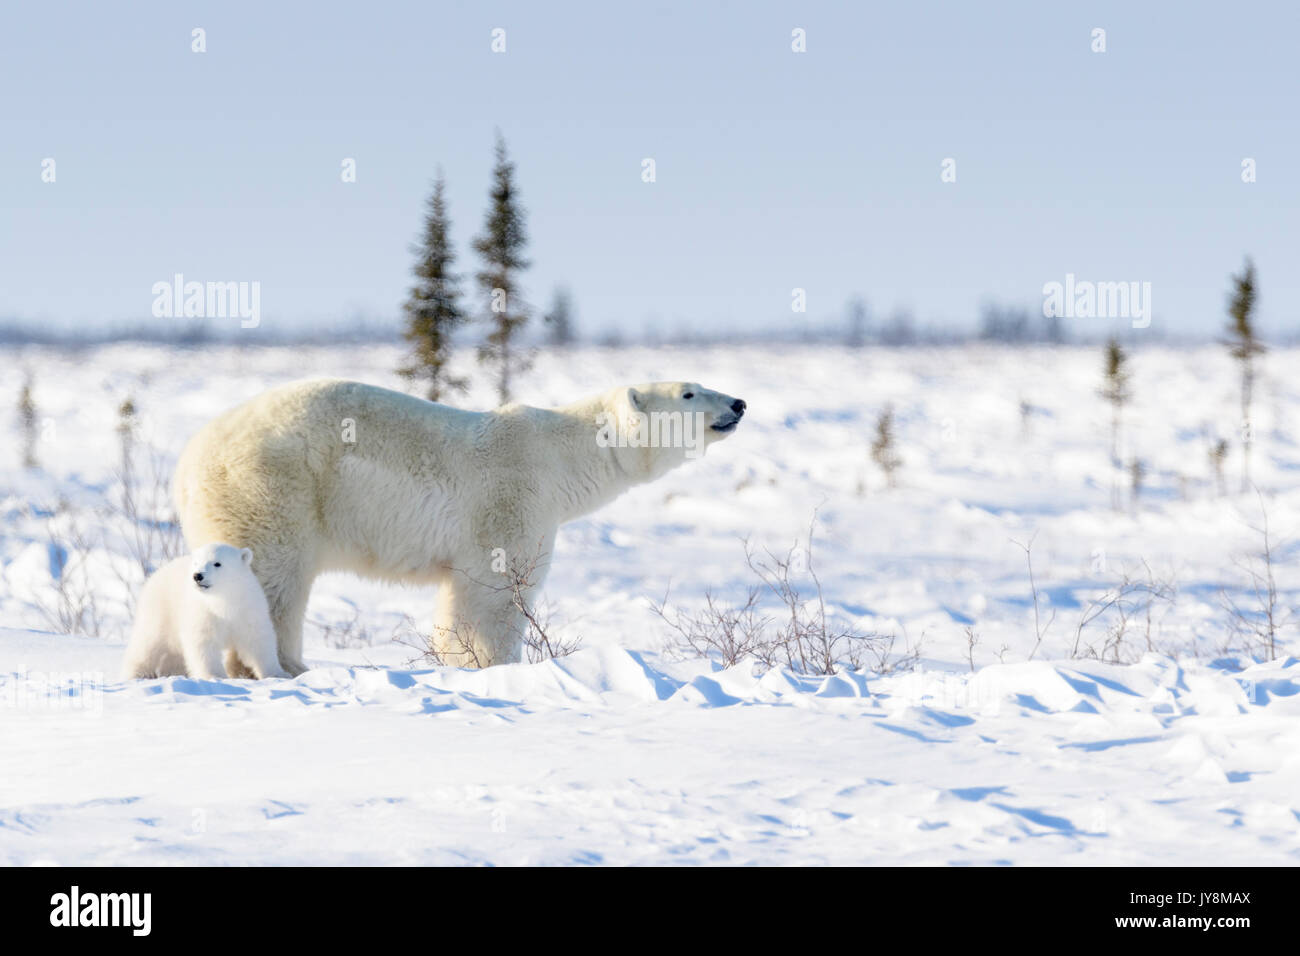 Polar bear mother (Ursus maritimus) with new born cub standing on tundra, Wapusk National Park, Manitoba, Canada - Stock Image